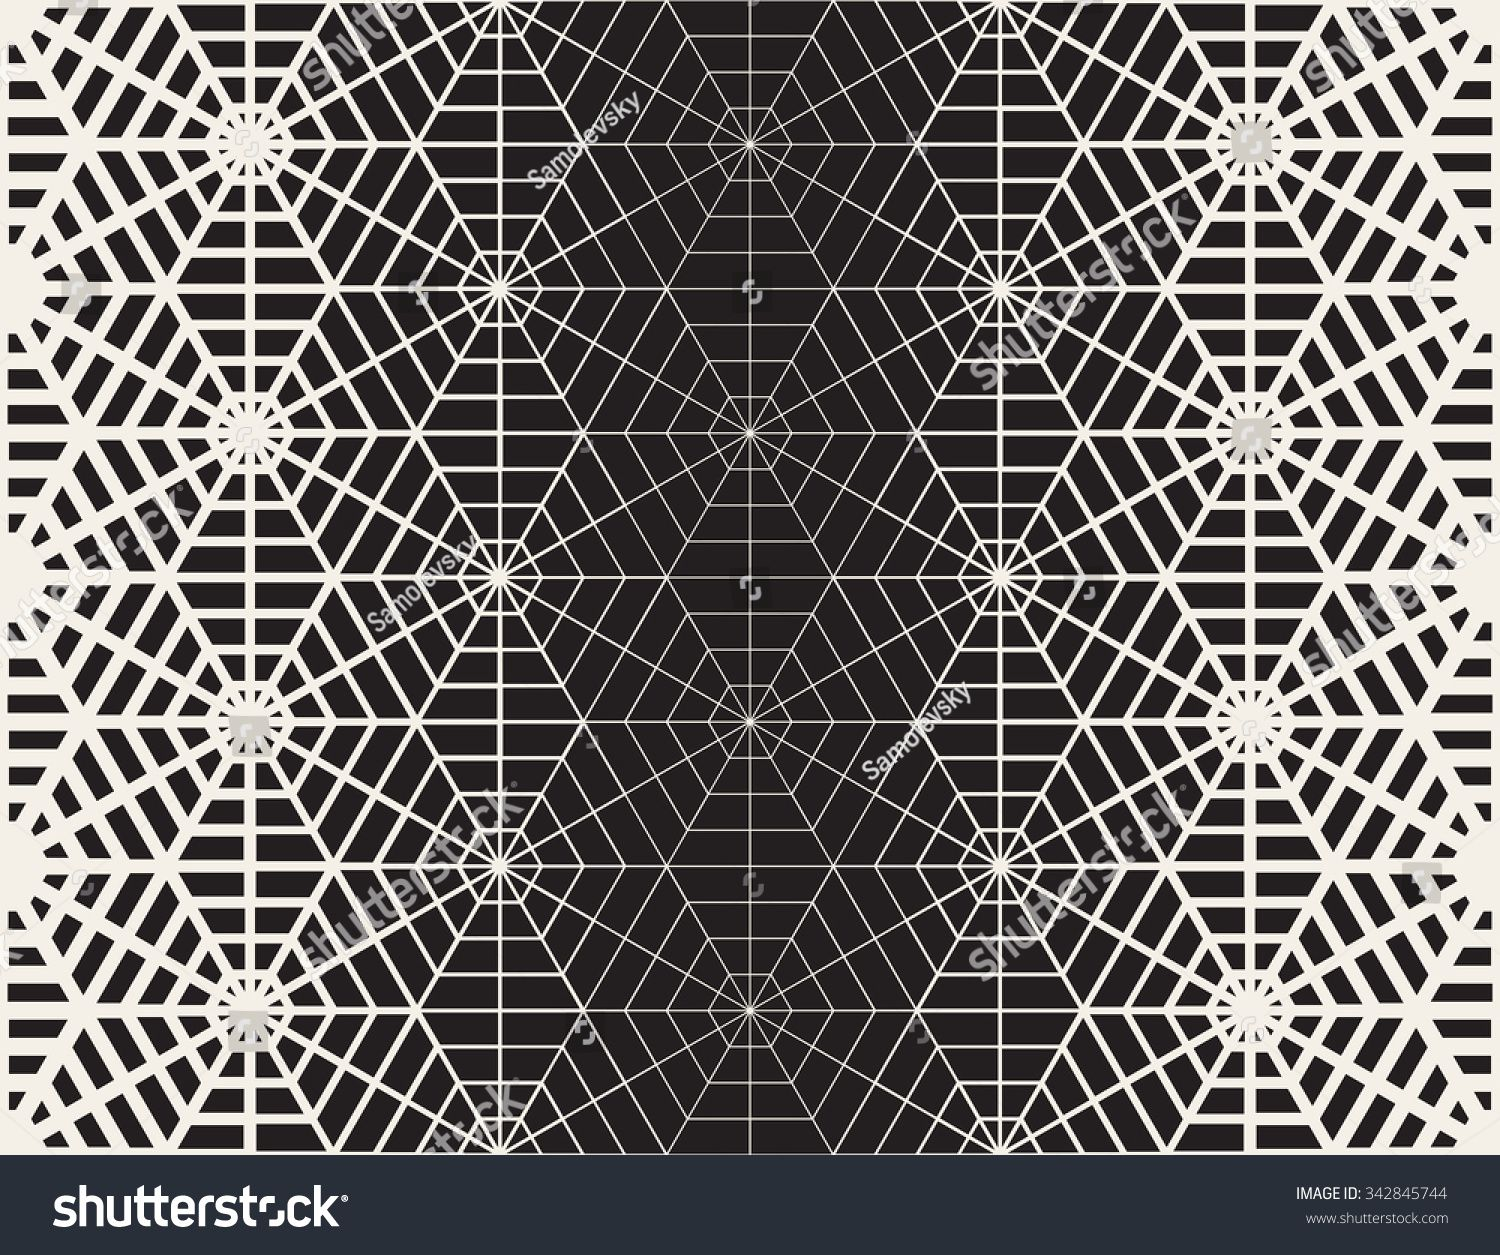 Vector Seamless Black And White Geometric Line Grid Spiderweb Shape Pattern Abstract Background Pattern Tattoo Geometric Tattoo Design Geometric Tattoo